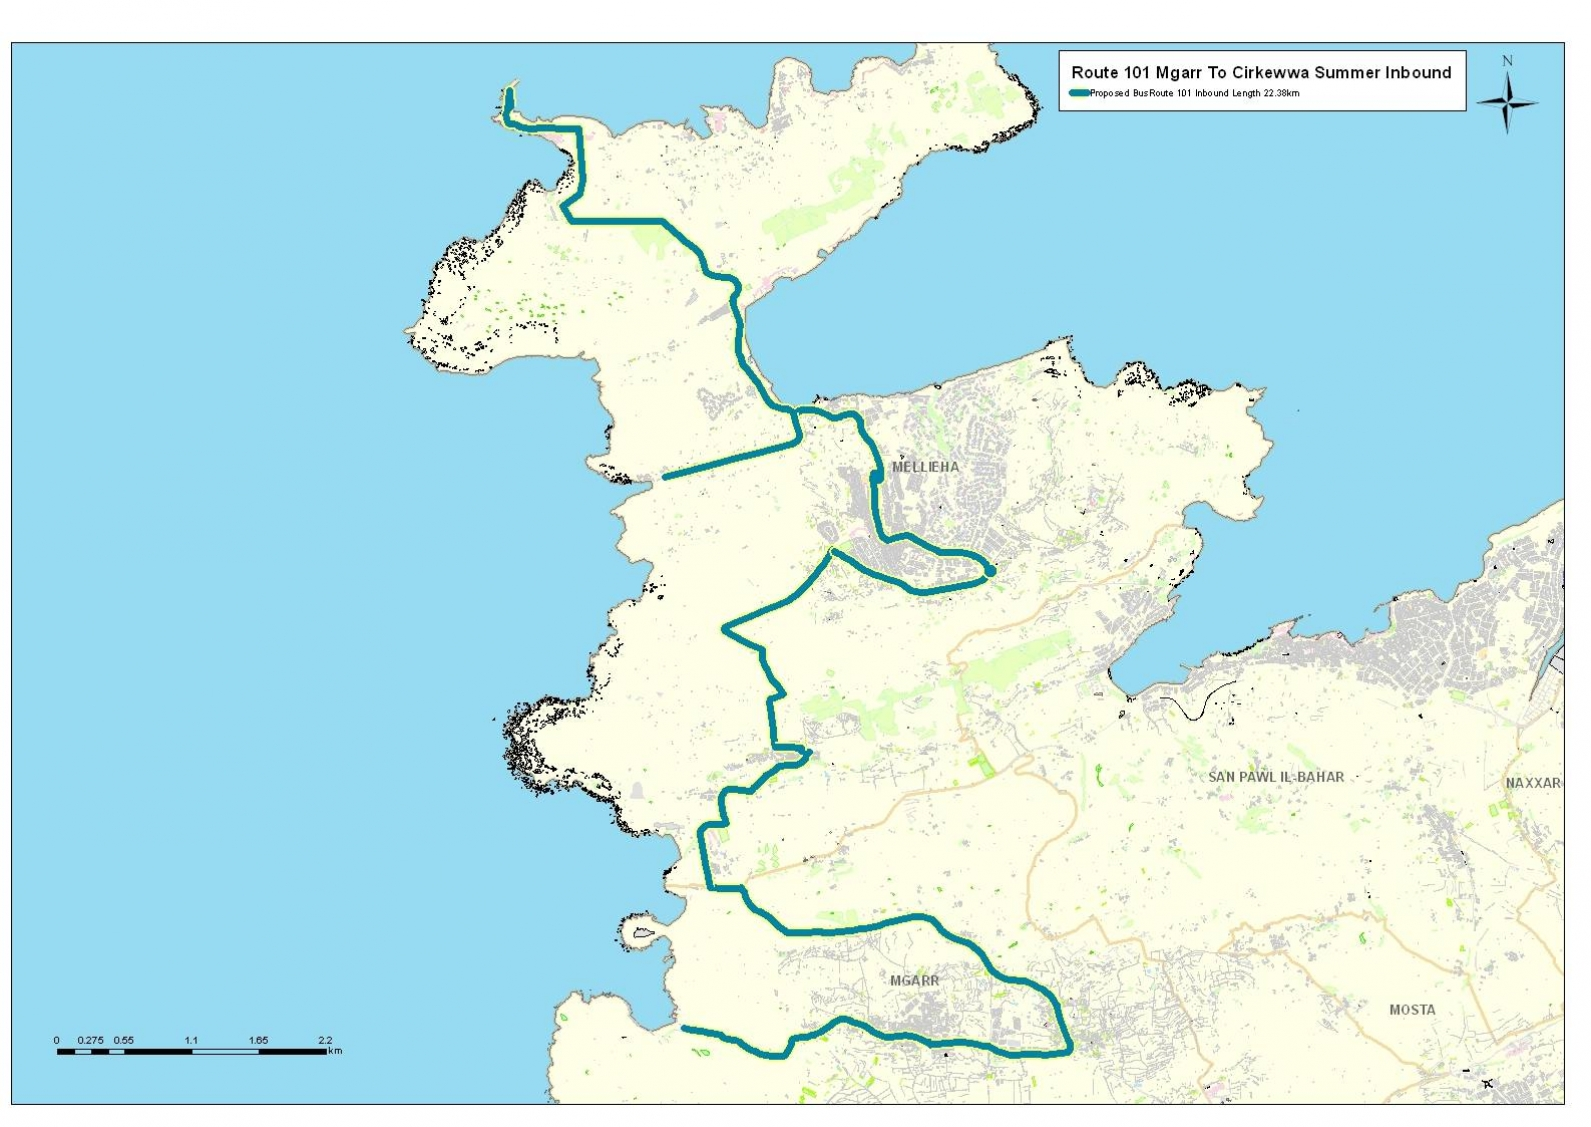 Land-current-network-routes-and-schedules-Summer-routes-6